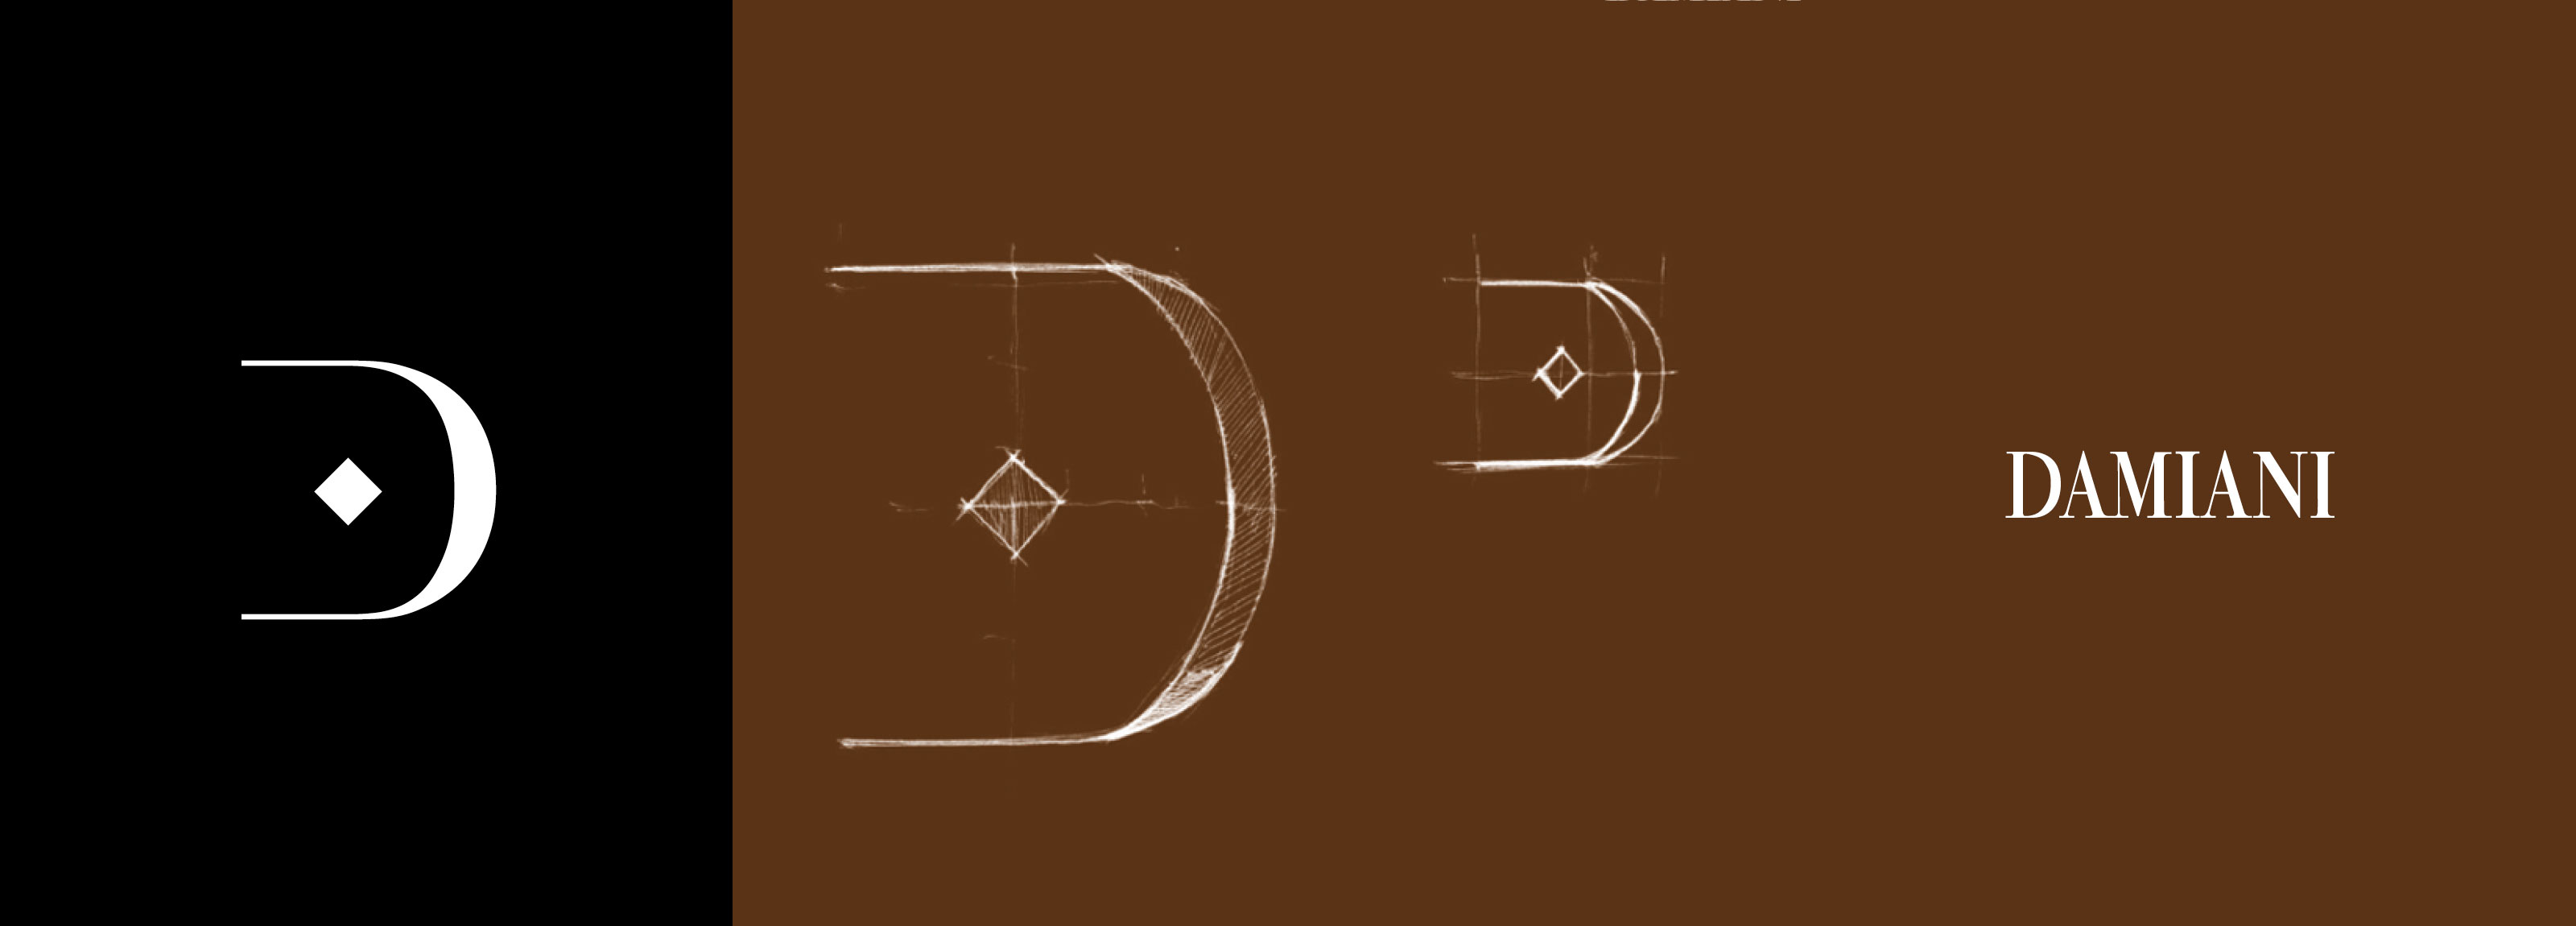 Project of a new logo for the renowned Italian jeweler Damiani realized by Hangar Design Group